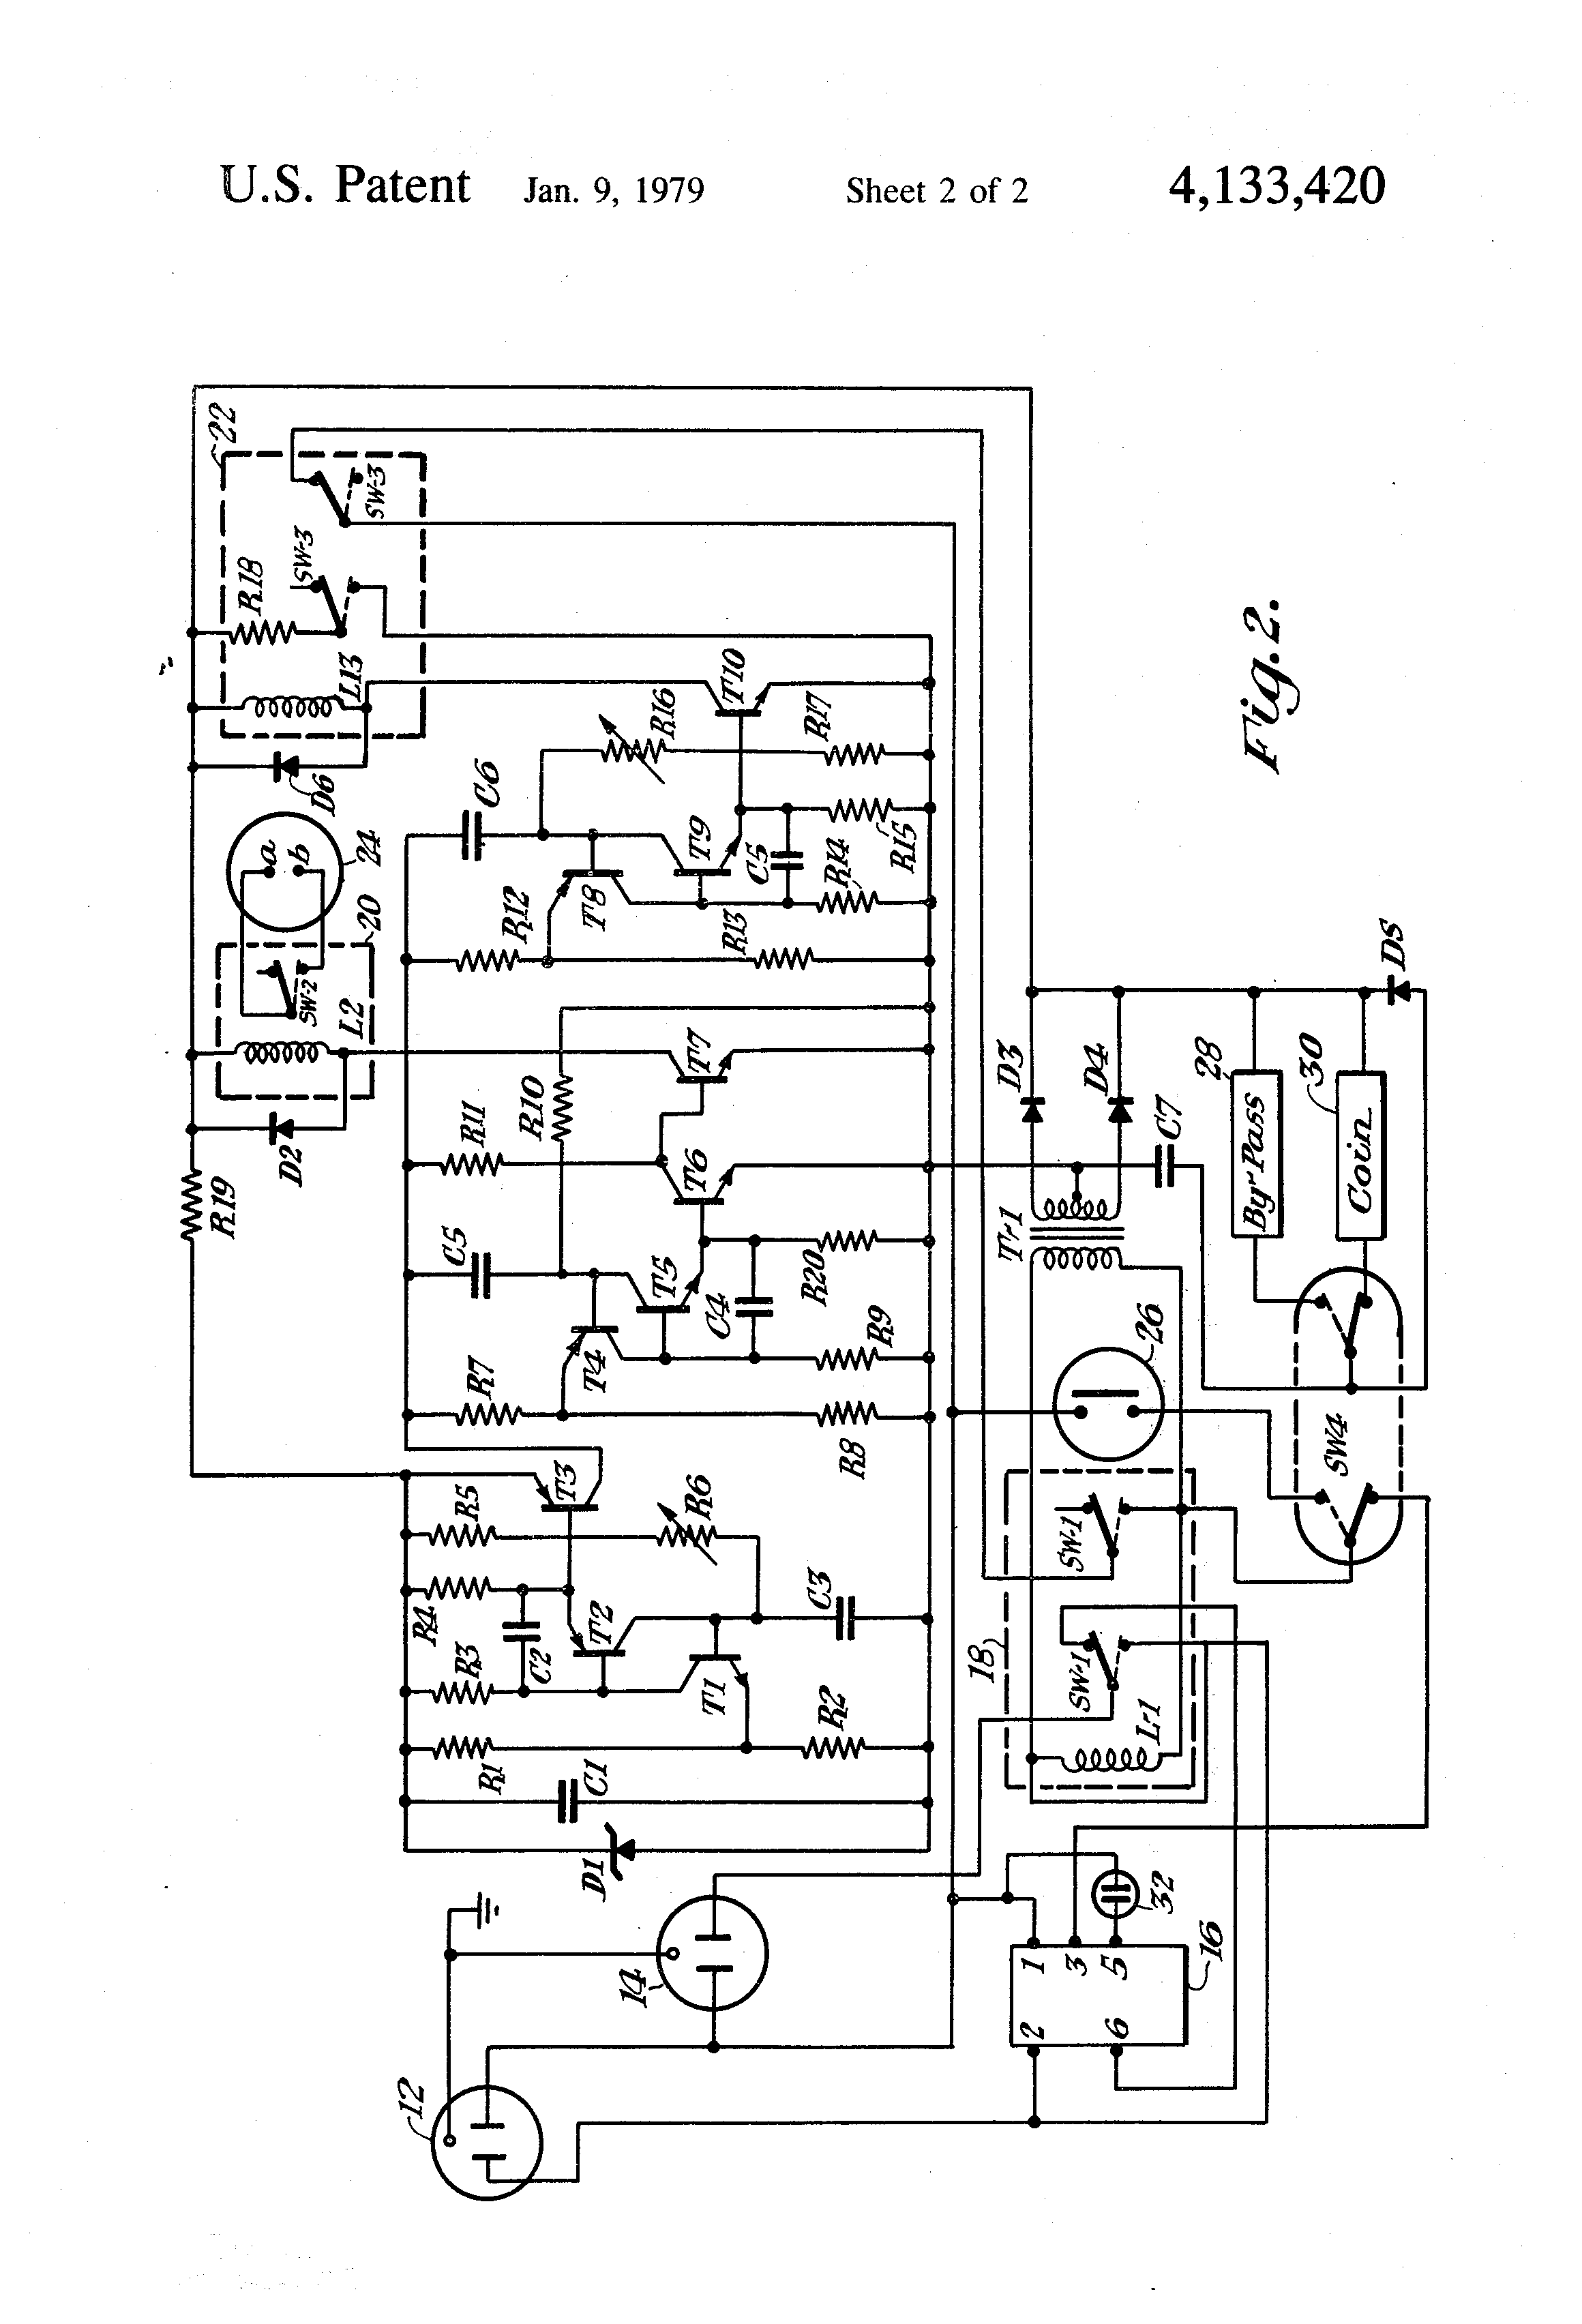 manual line drawing electrical receptacle